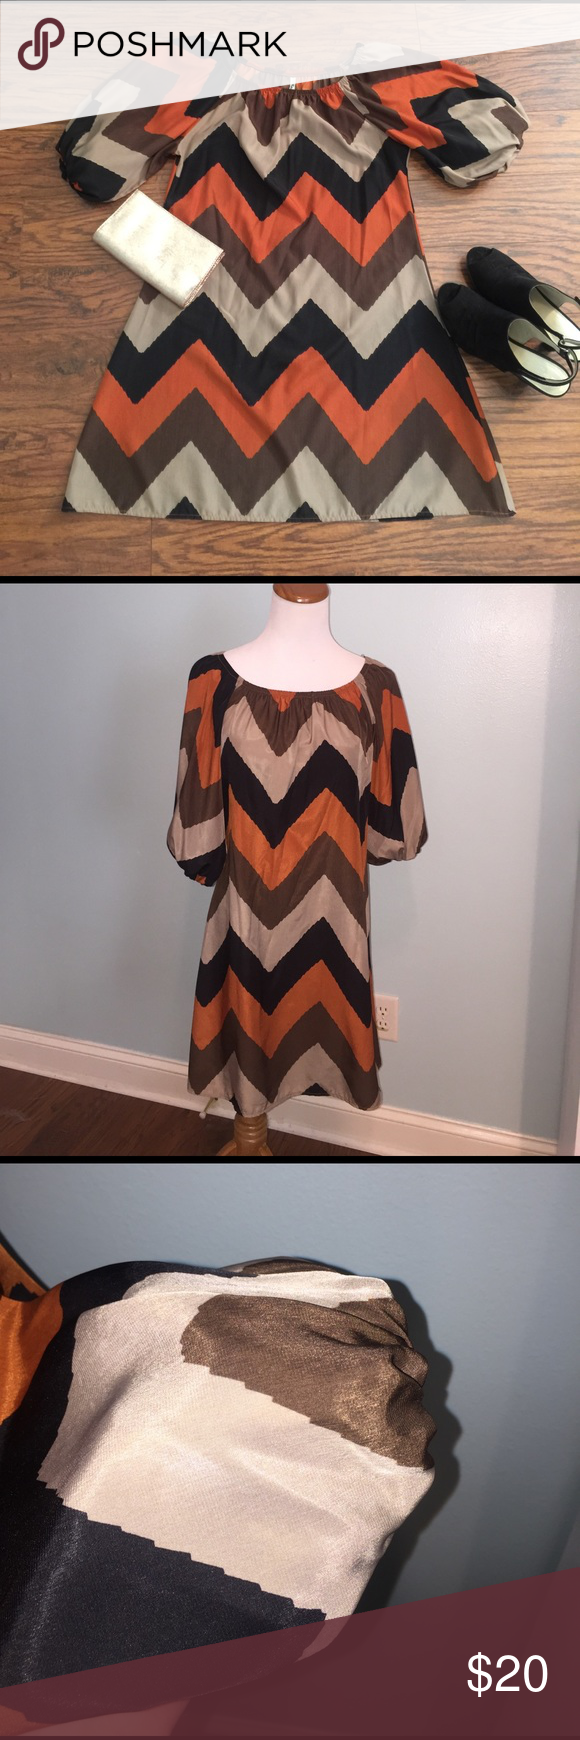 "Bubble sleeve chevron mini dress Size medium. Bust is 18.5"" and total length is 33"". Cute and fun dress with bubble sleeves! Elastic at neckline and sleeves. 100% polyester. Rachal Kate Dresses Mini"